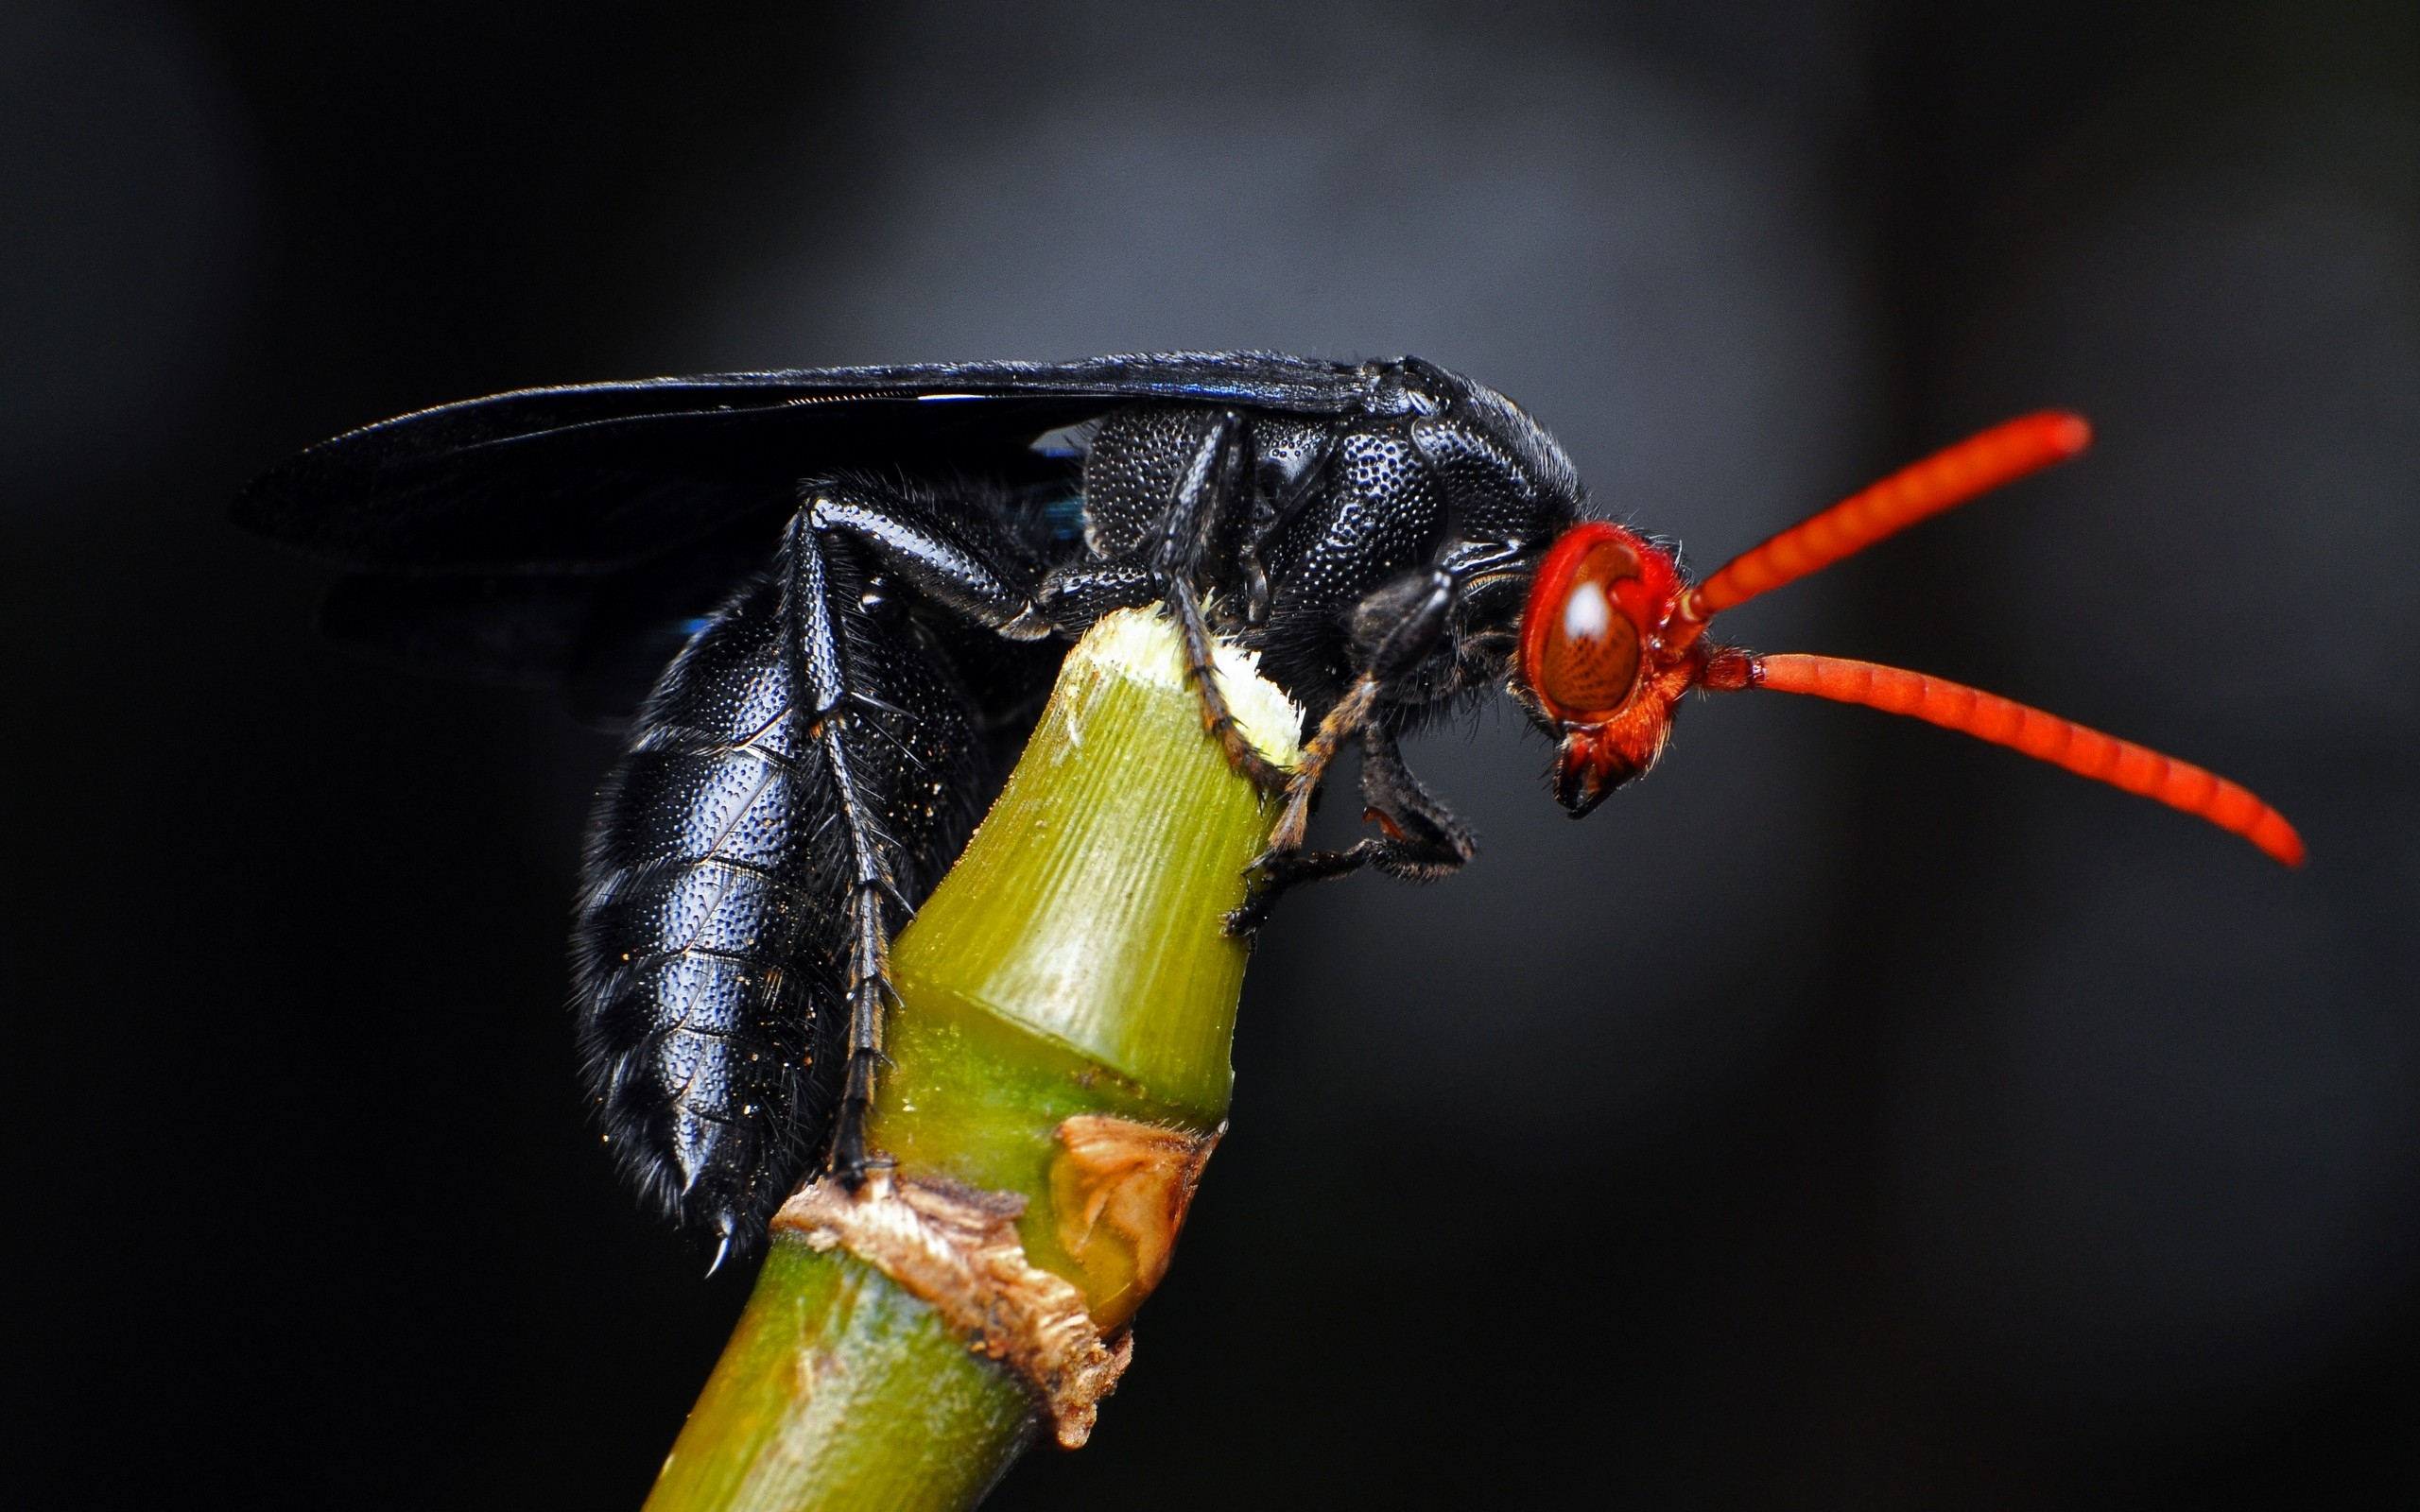 Black fly with red head